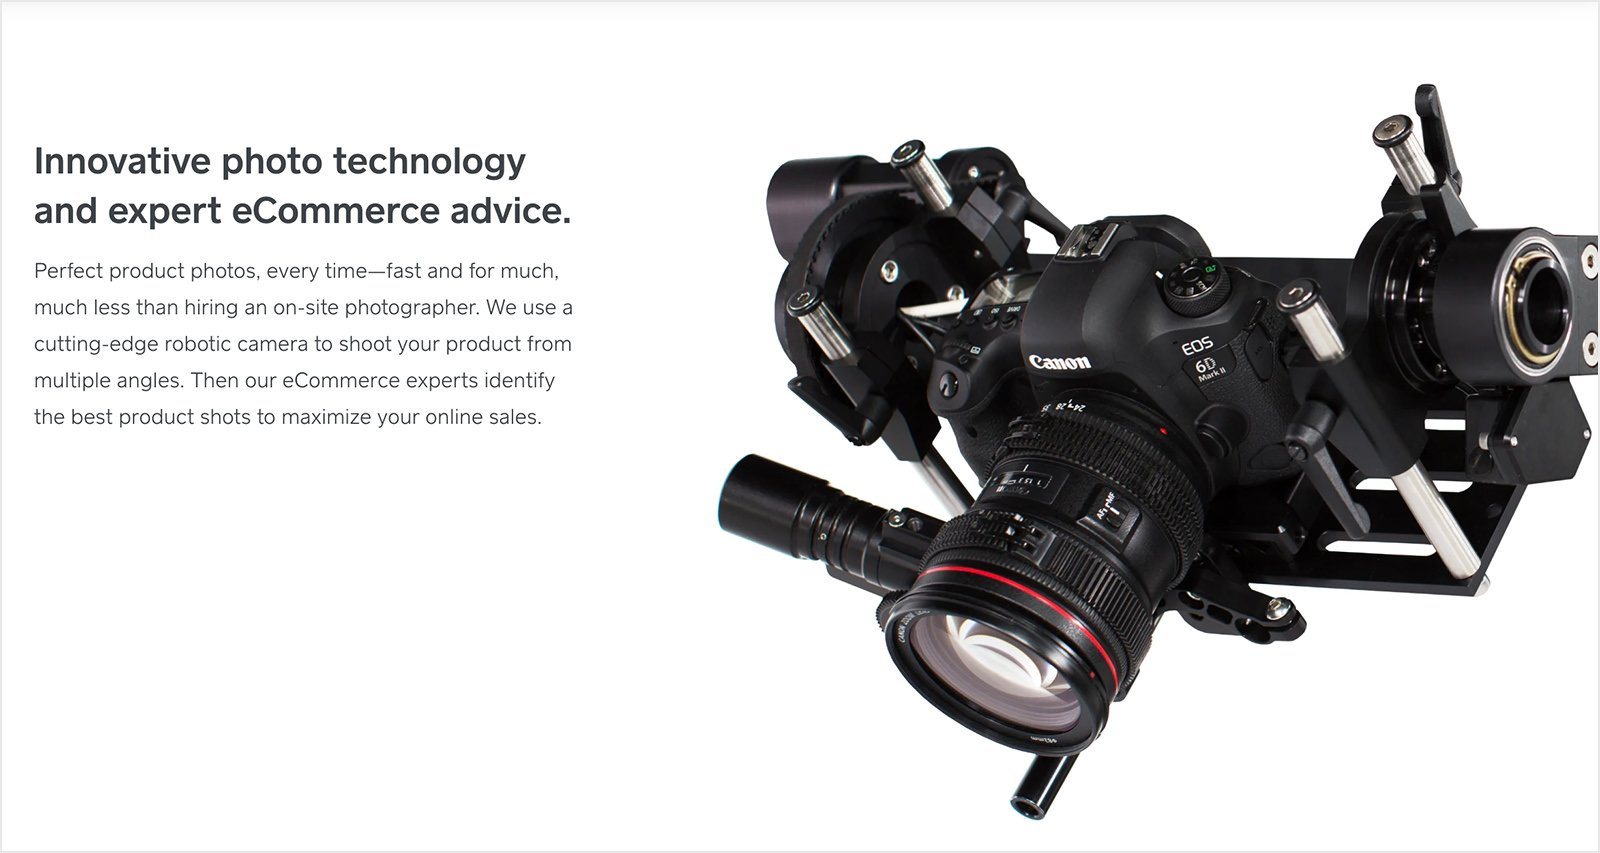 Square Is Offering Professional Product Photography Services